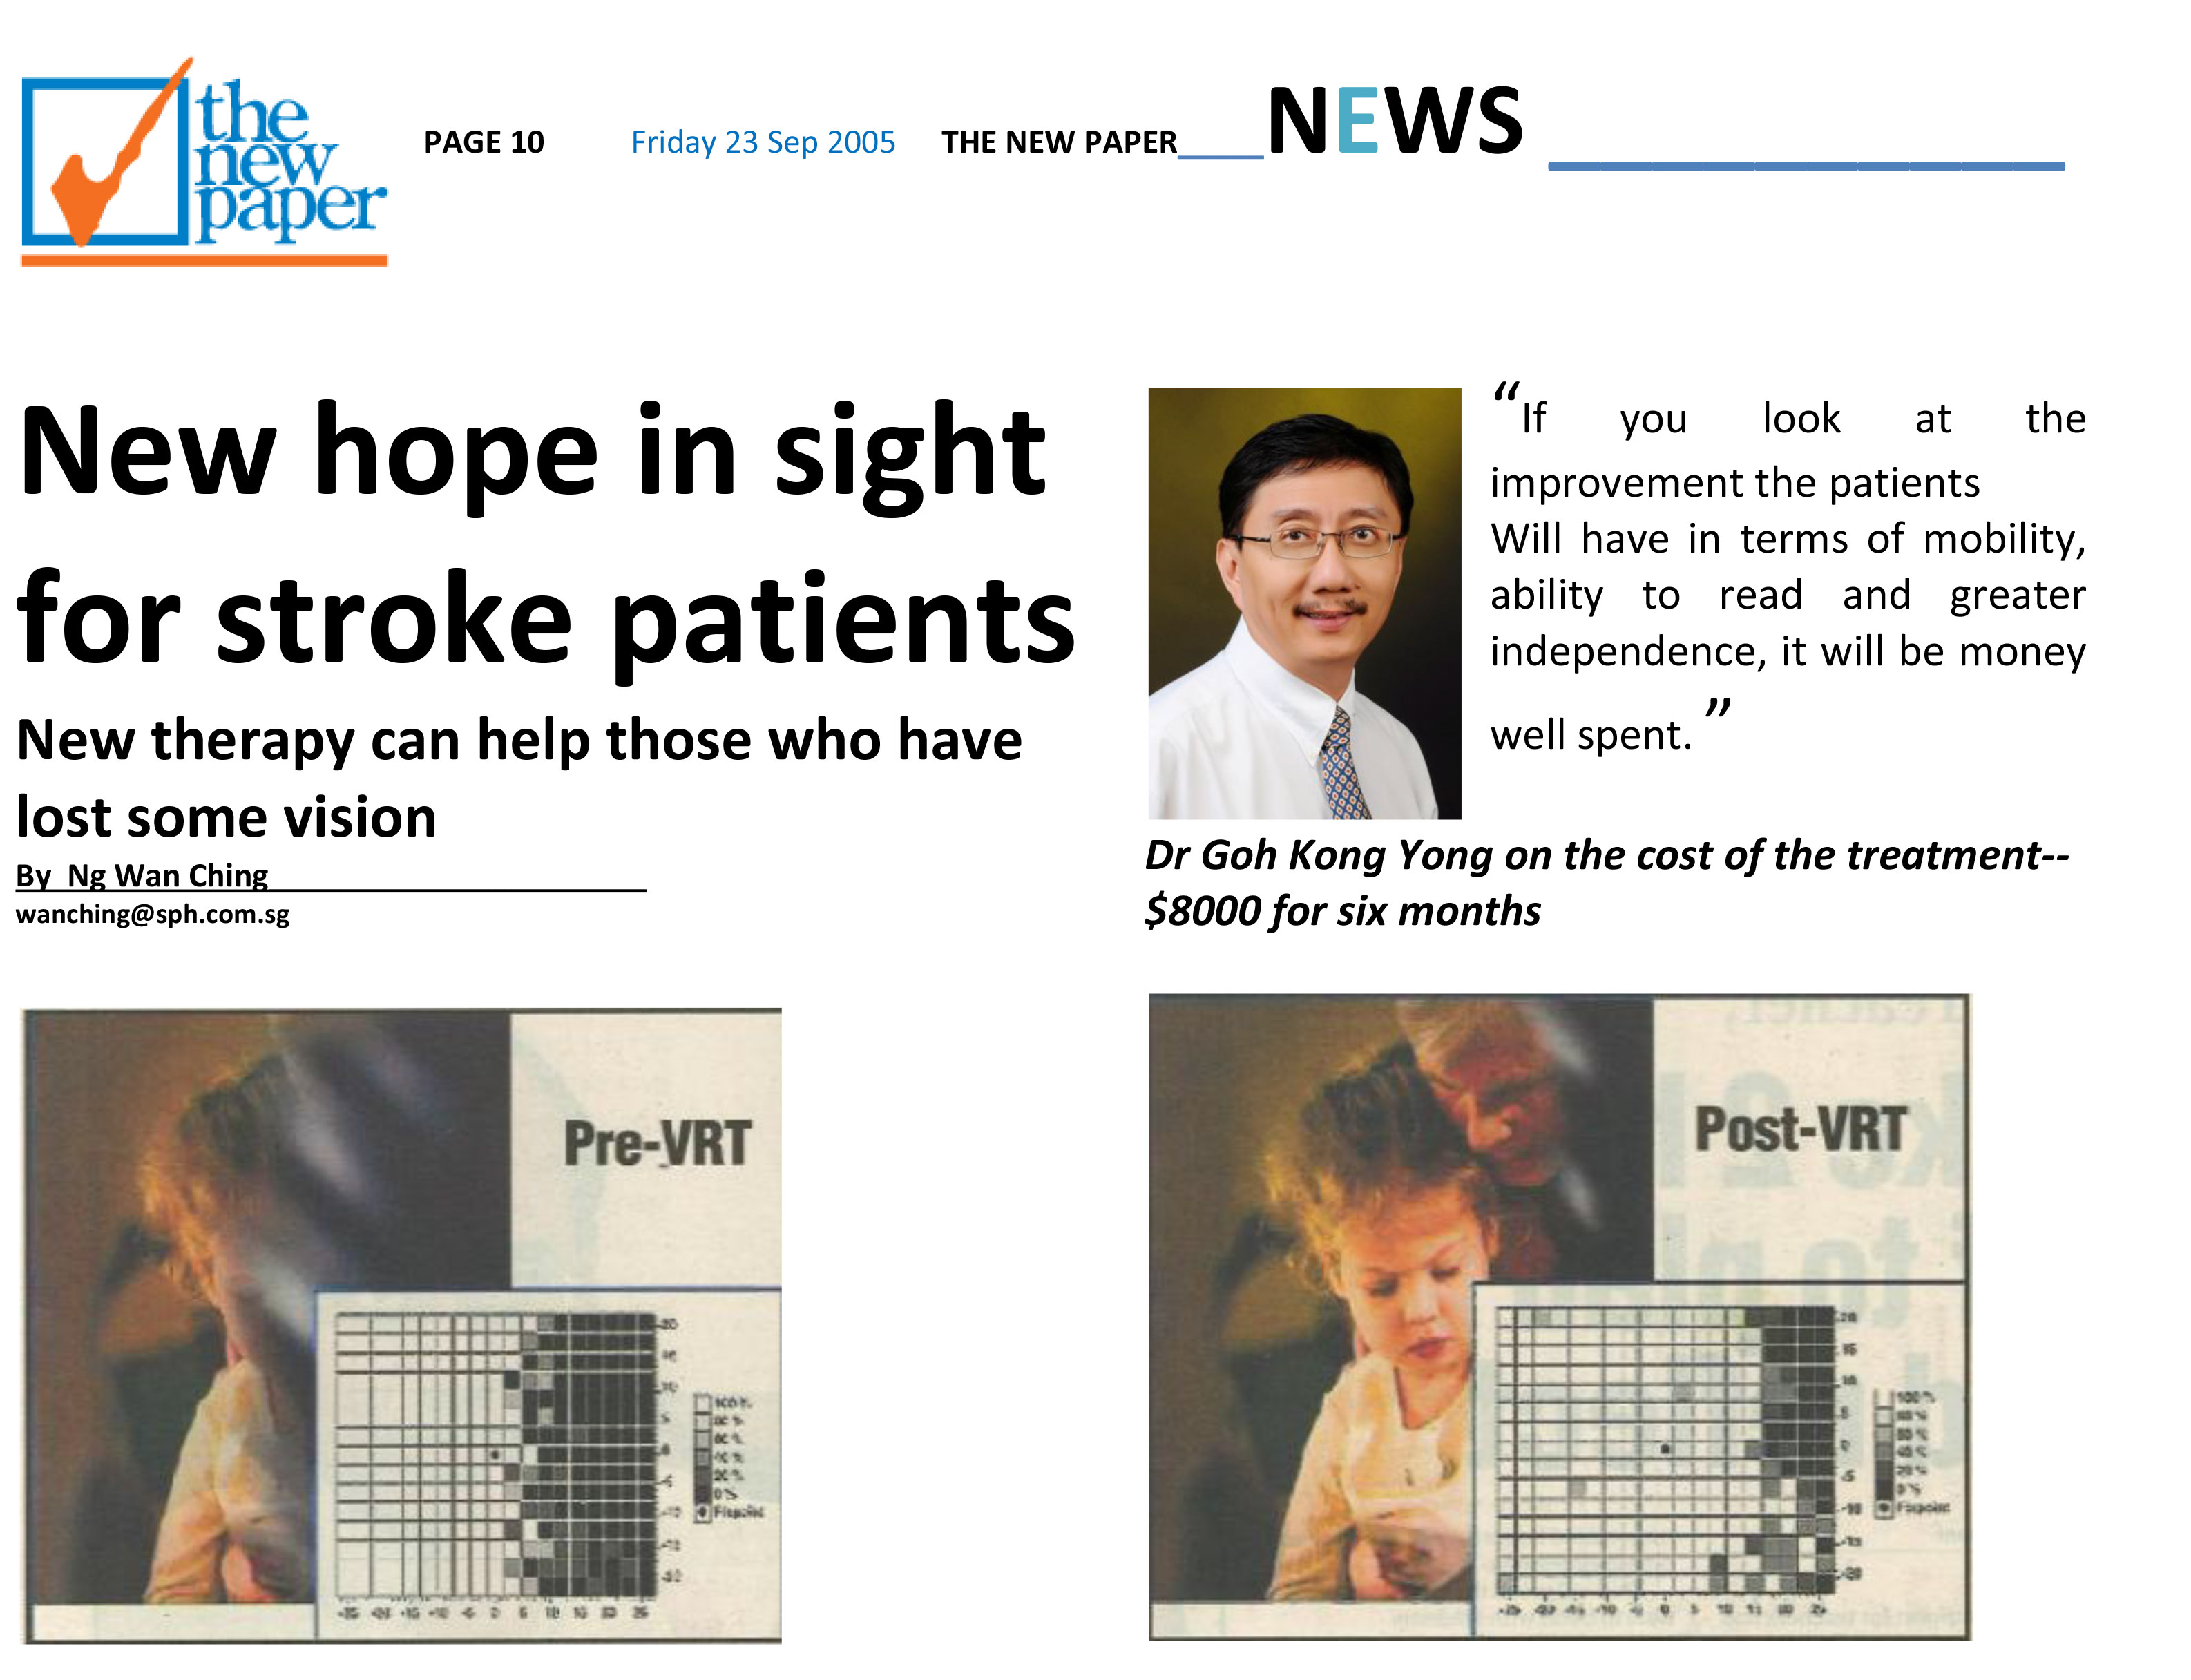 Media THE NEW PAPER New hope in sight for stroke patients Article